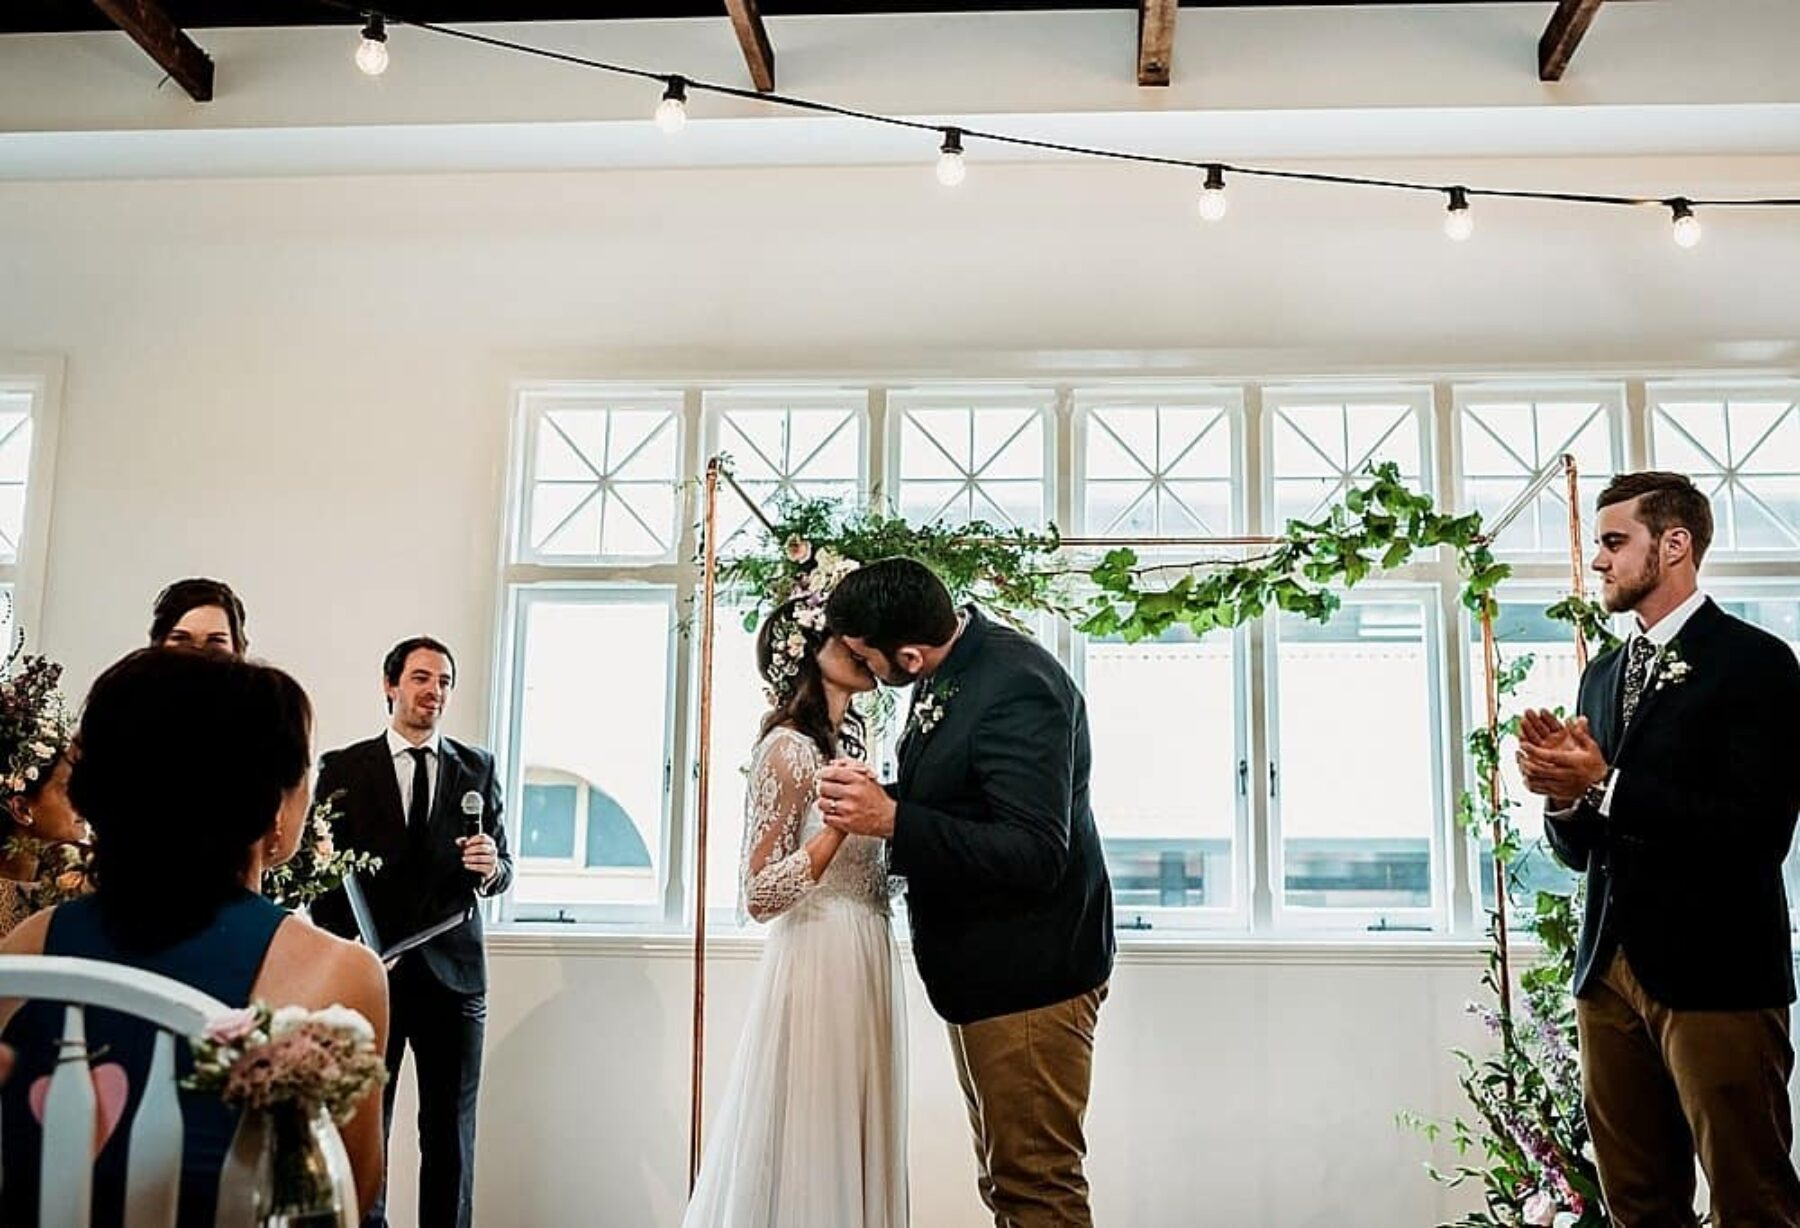 vintage-inspired wedding at The Flour Factory Perth - CJ Williams photography